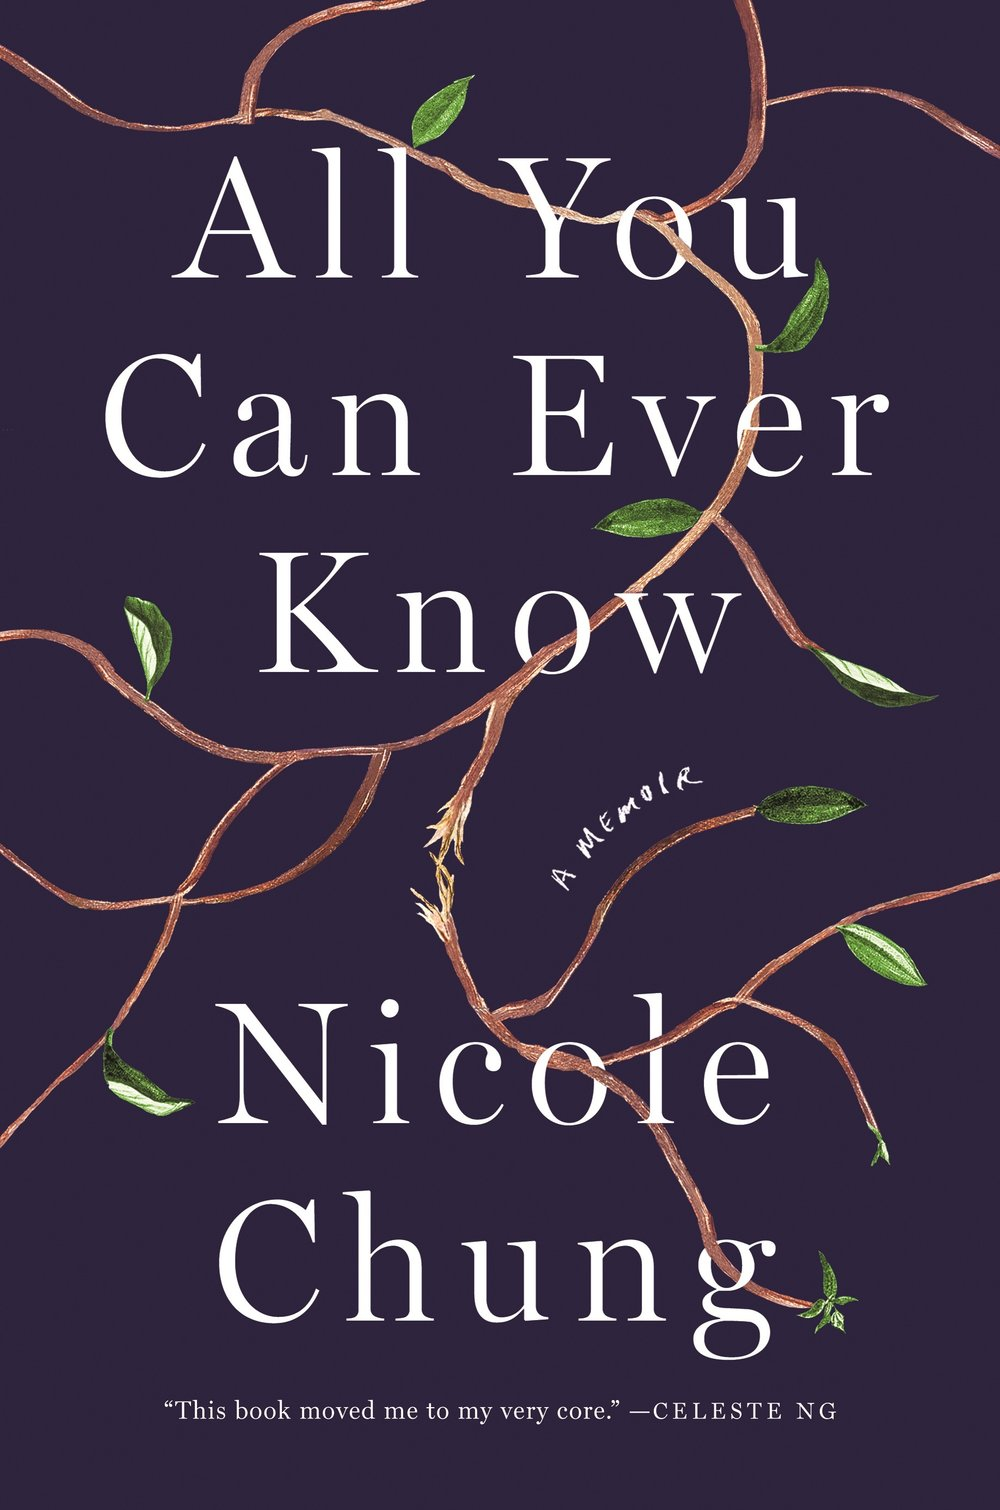 Best Books By Women in 2018 - All You Can Ever Know by Nicole Chung